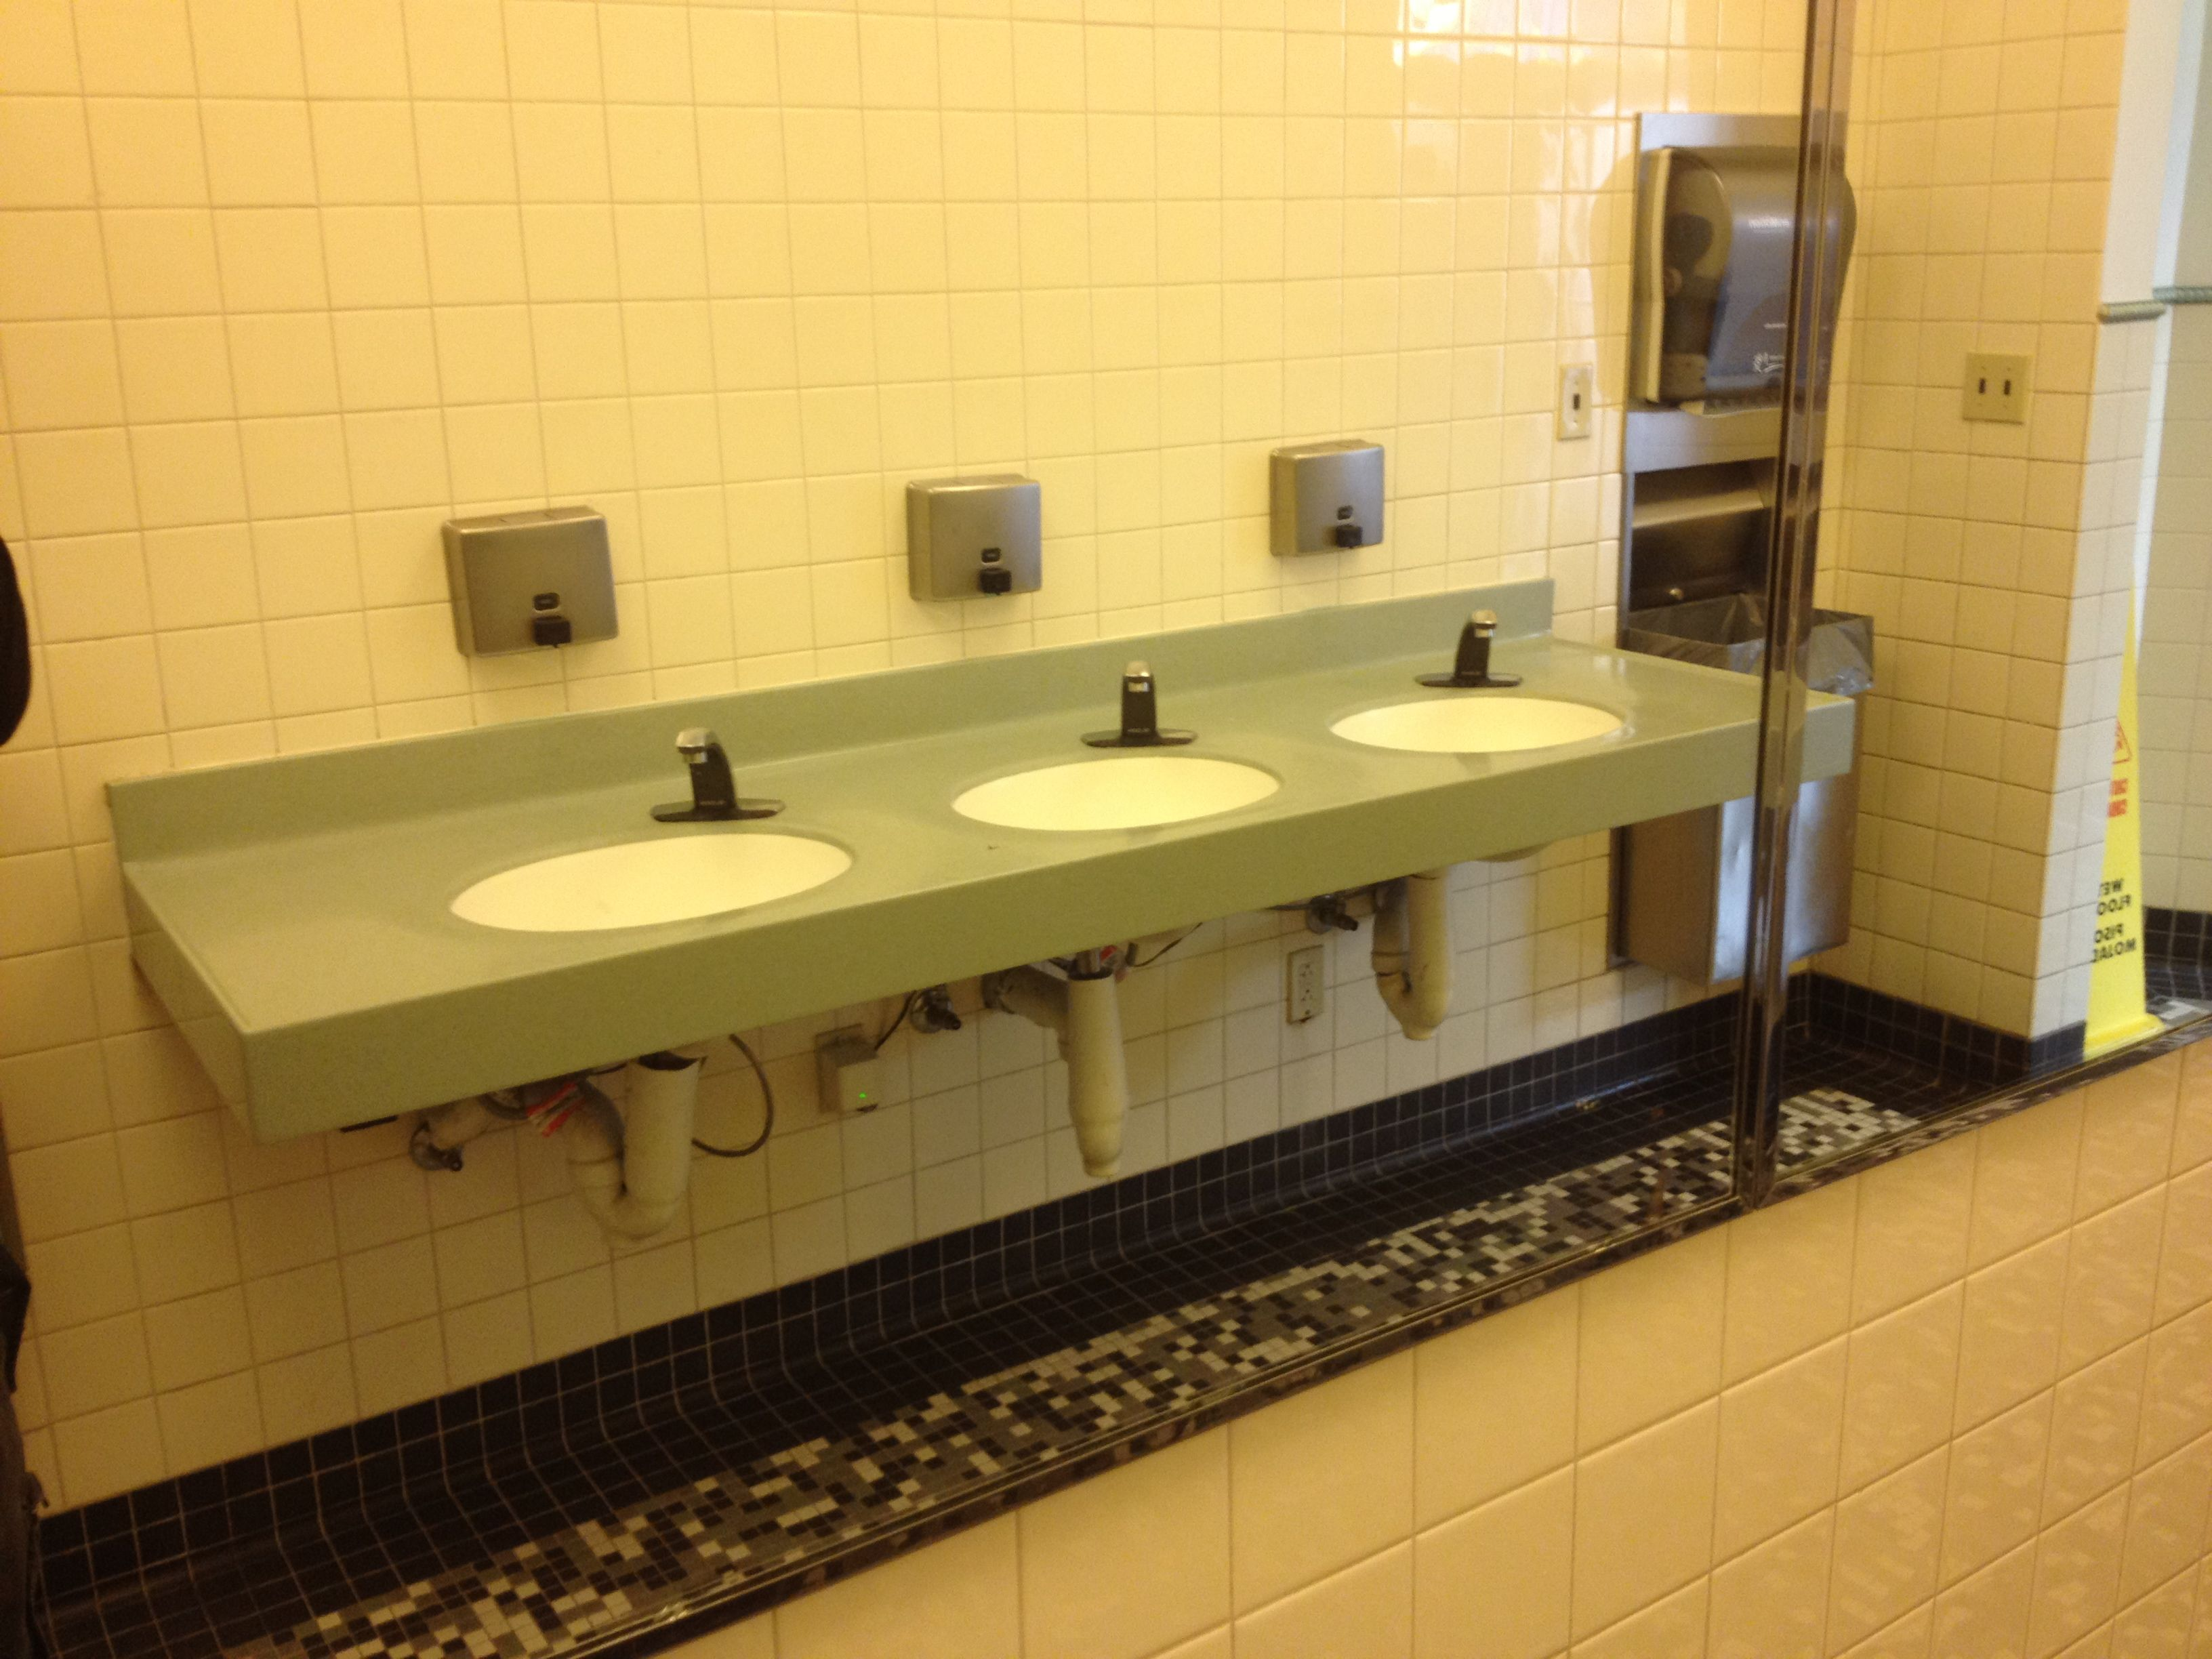 Public Bathroom Sink : By switching the mirrors to the other side, they had significantly ...